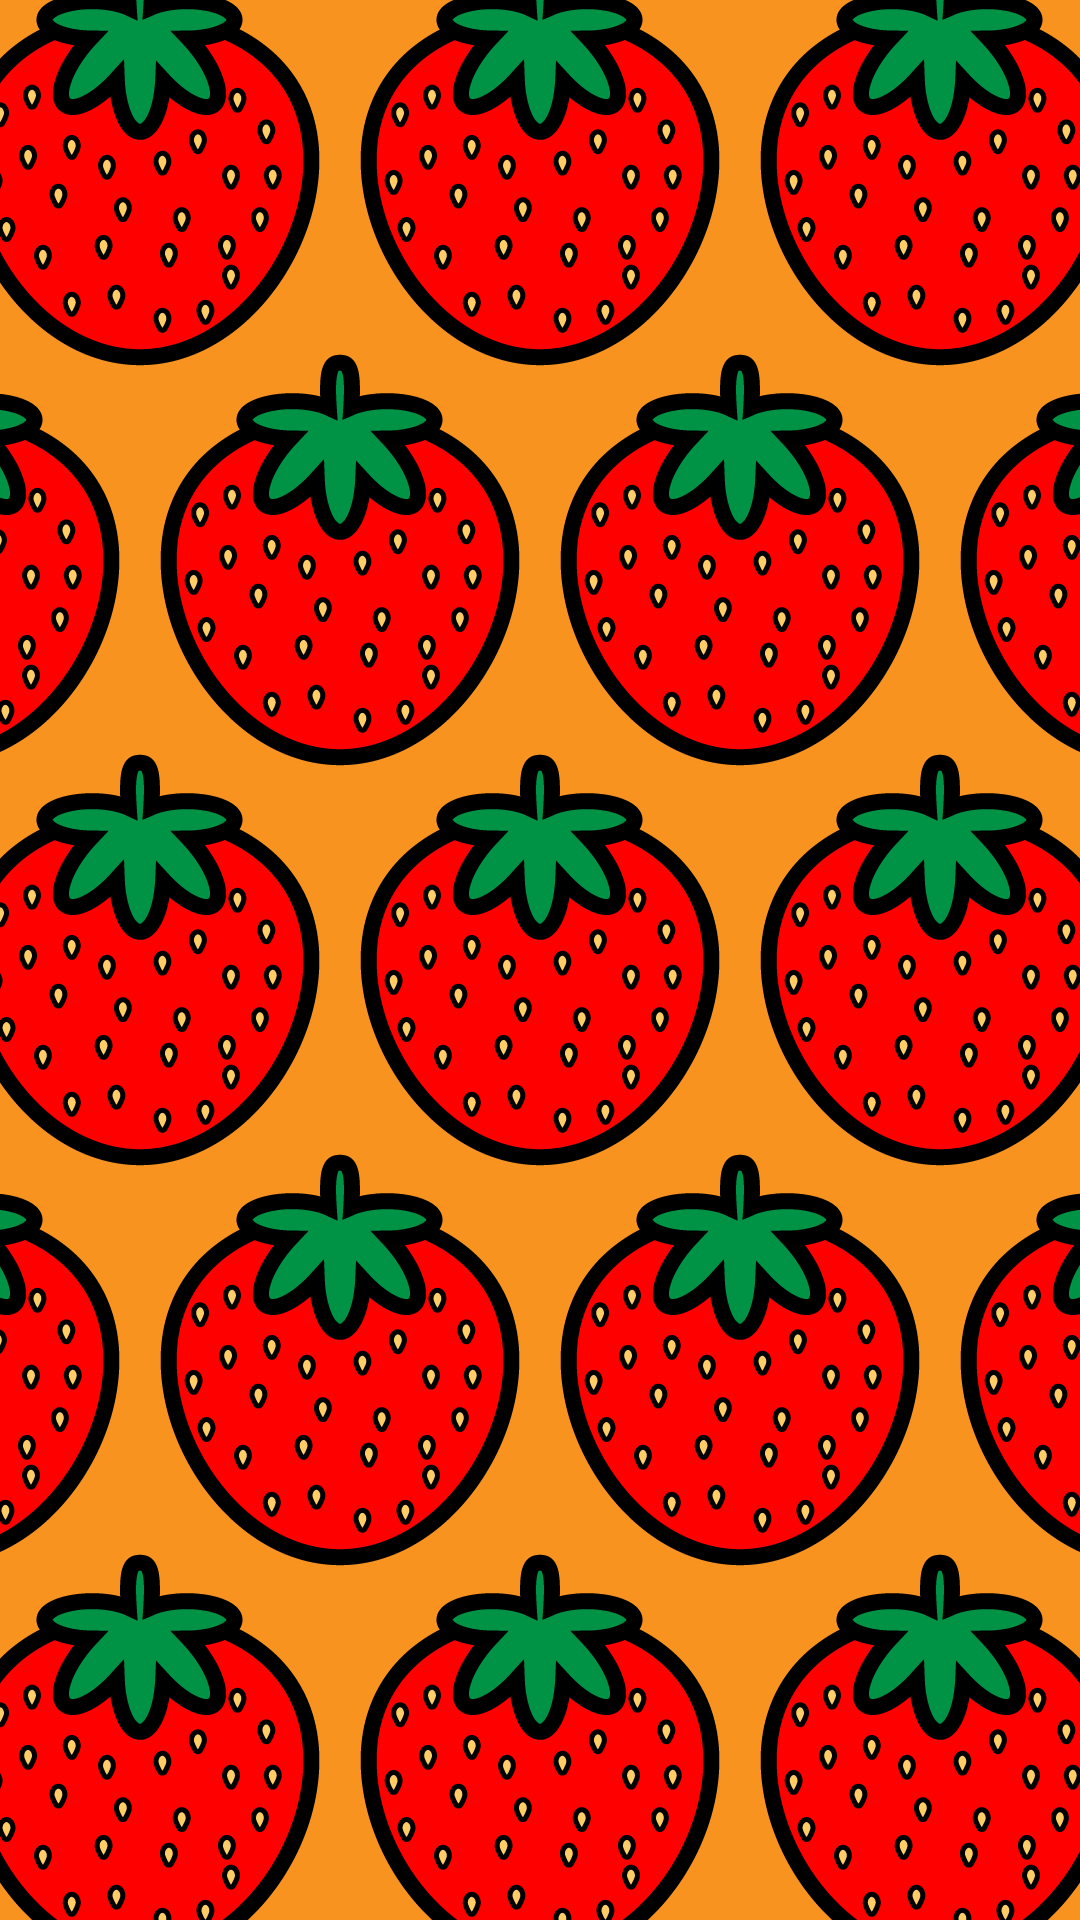 wallpaper1_strawberry-fill-orange-iphone